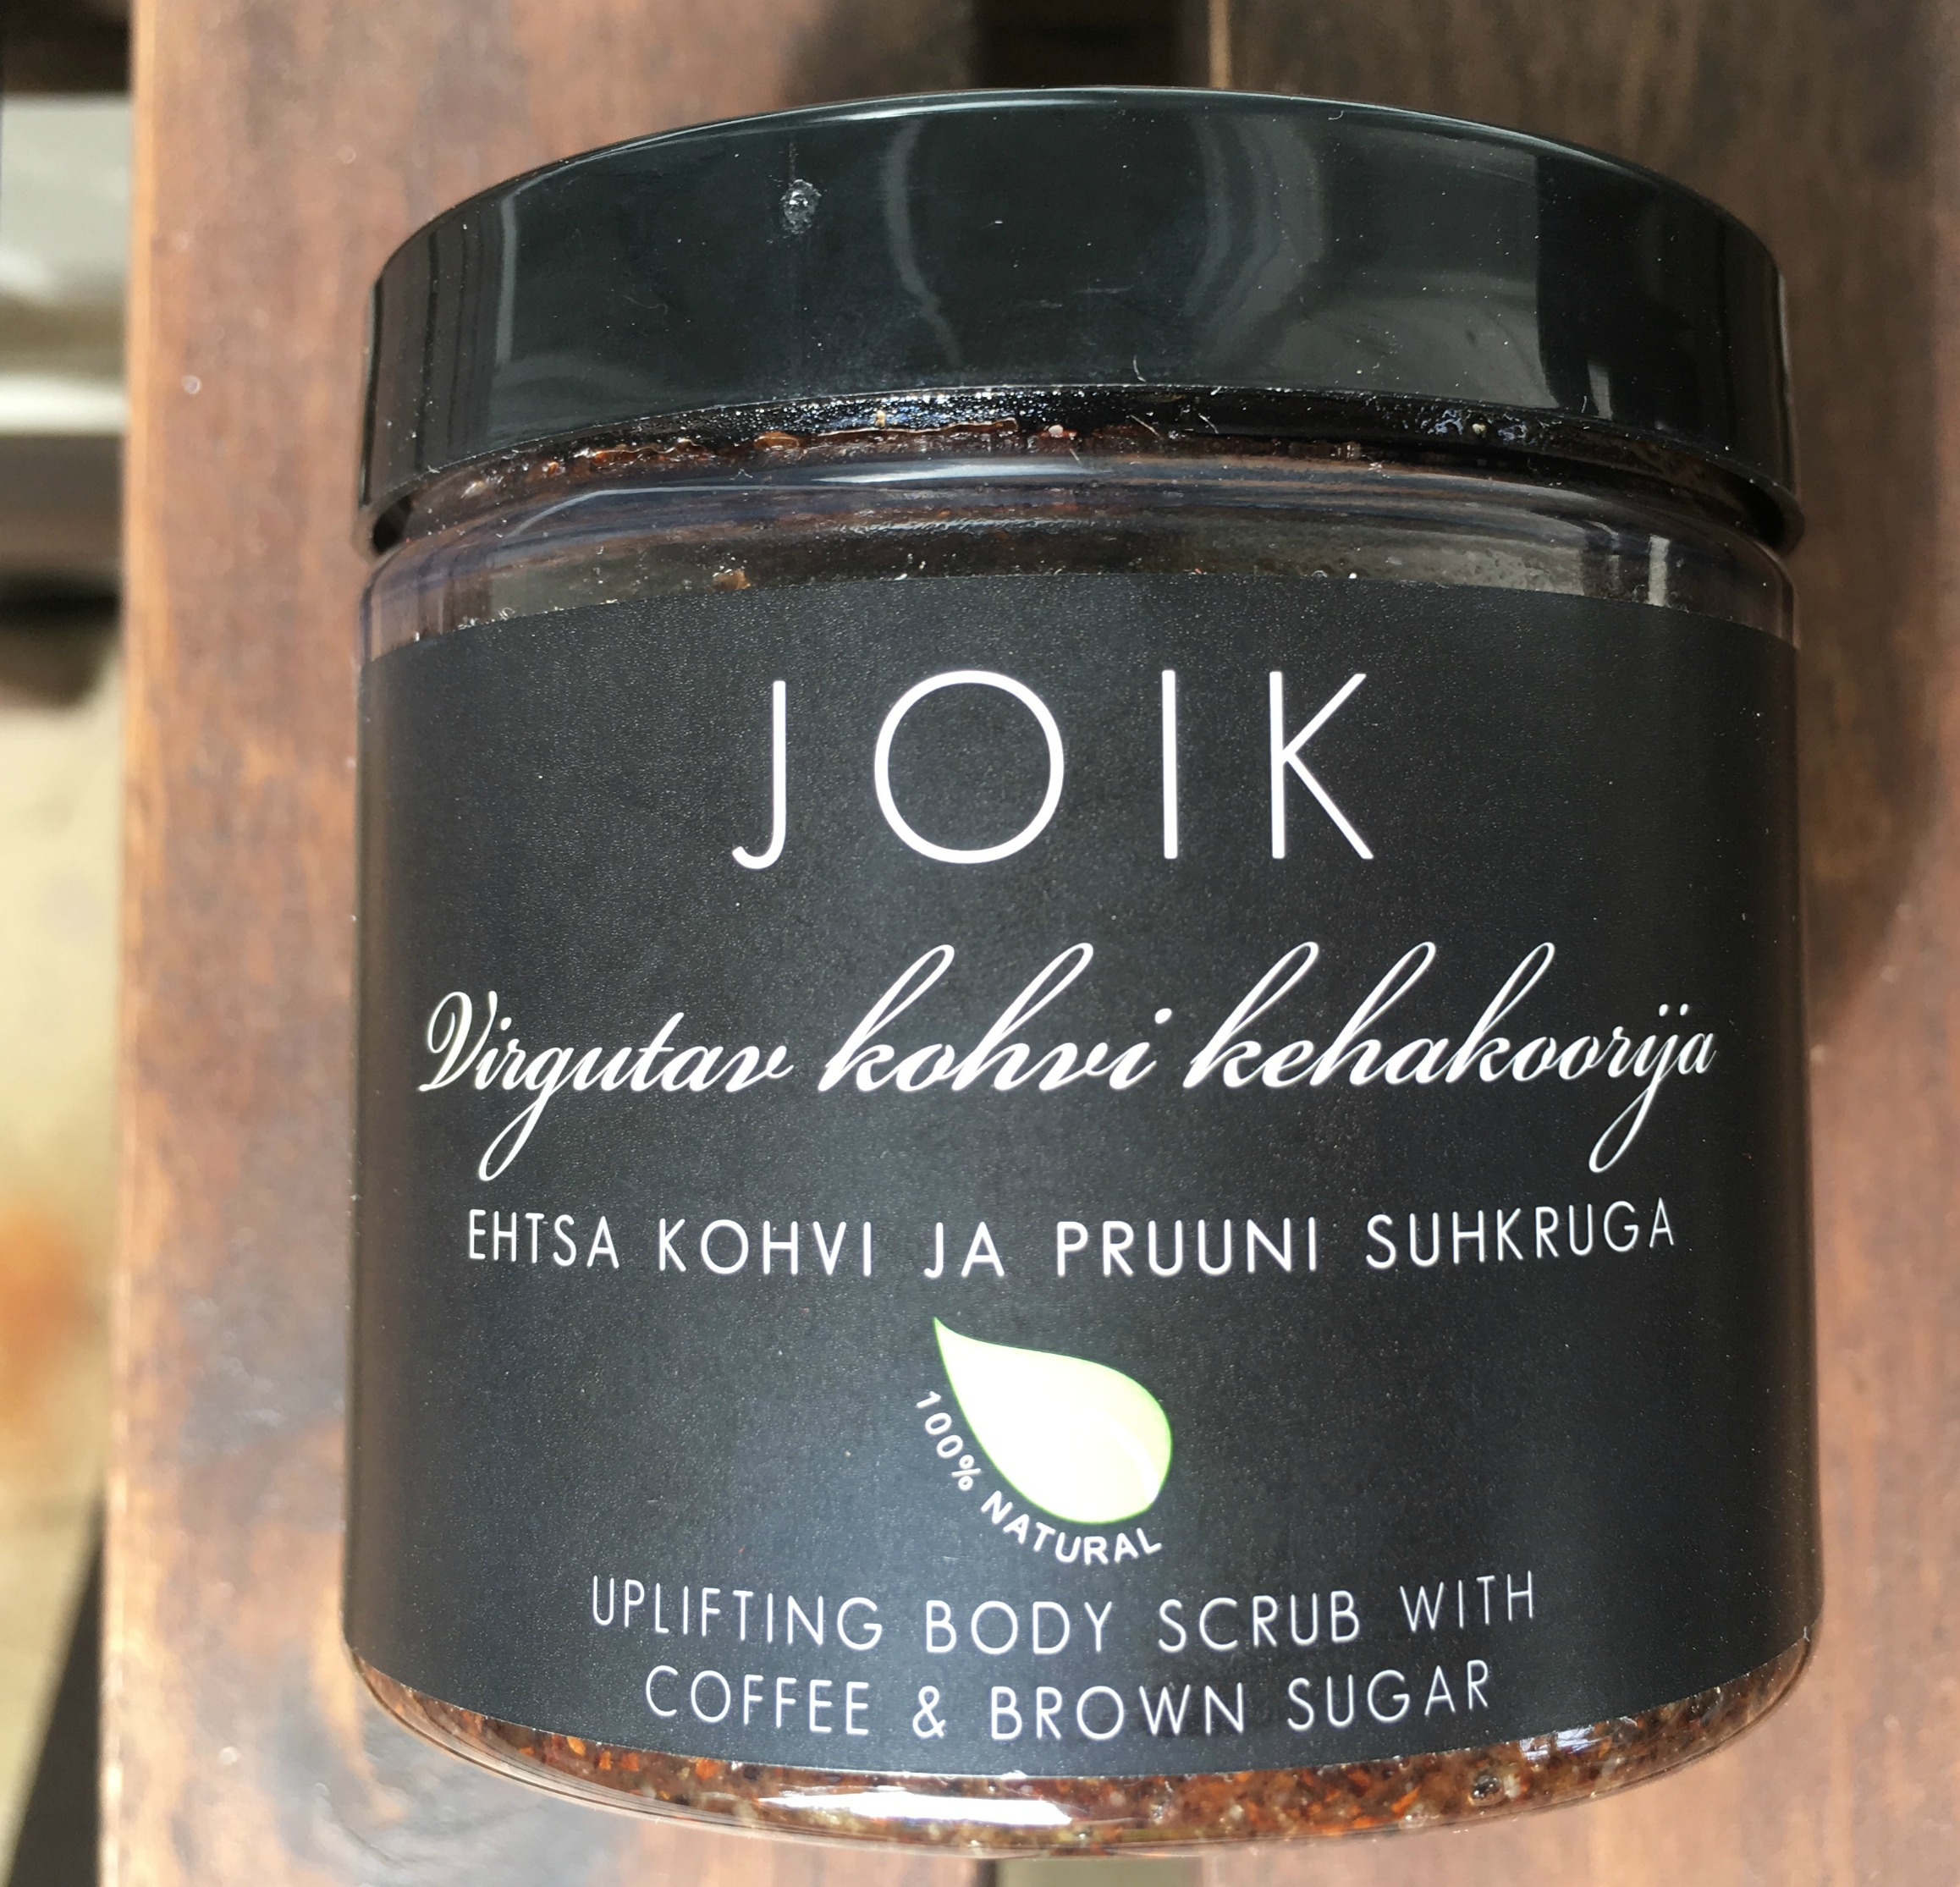 Joik Uplifting Coffee Body Scrub